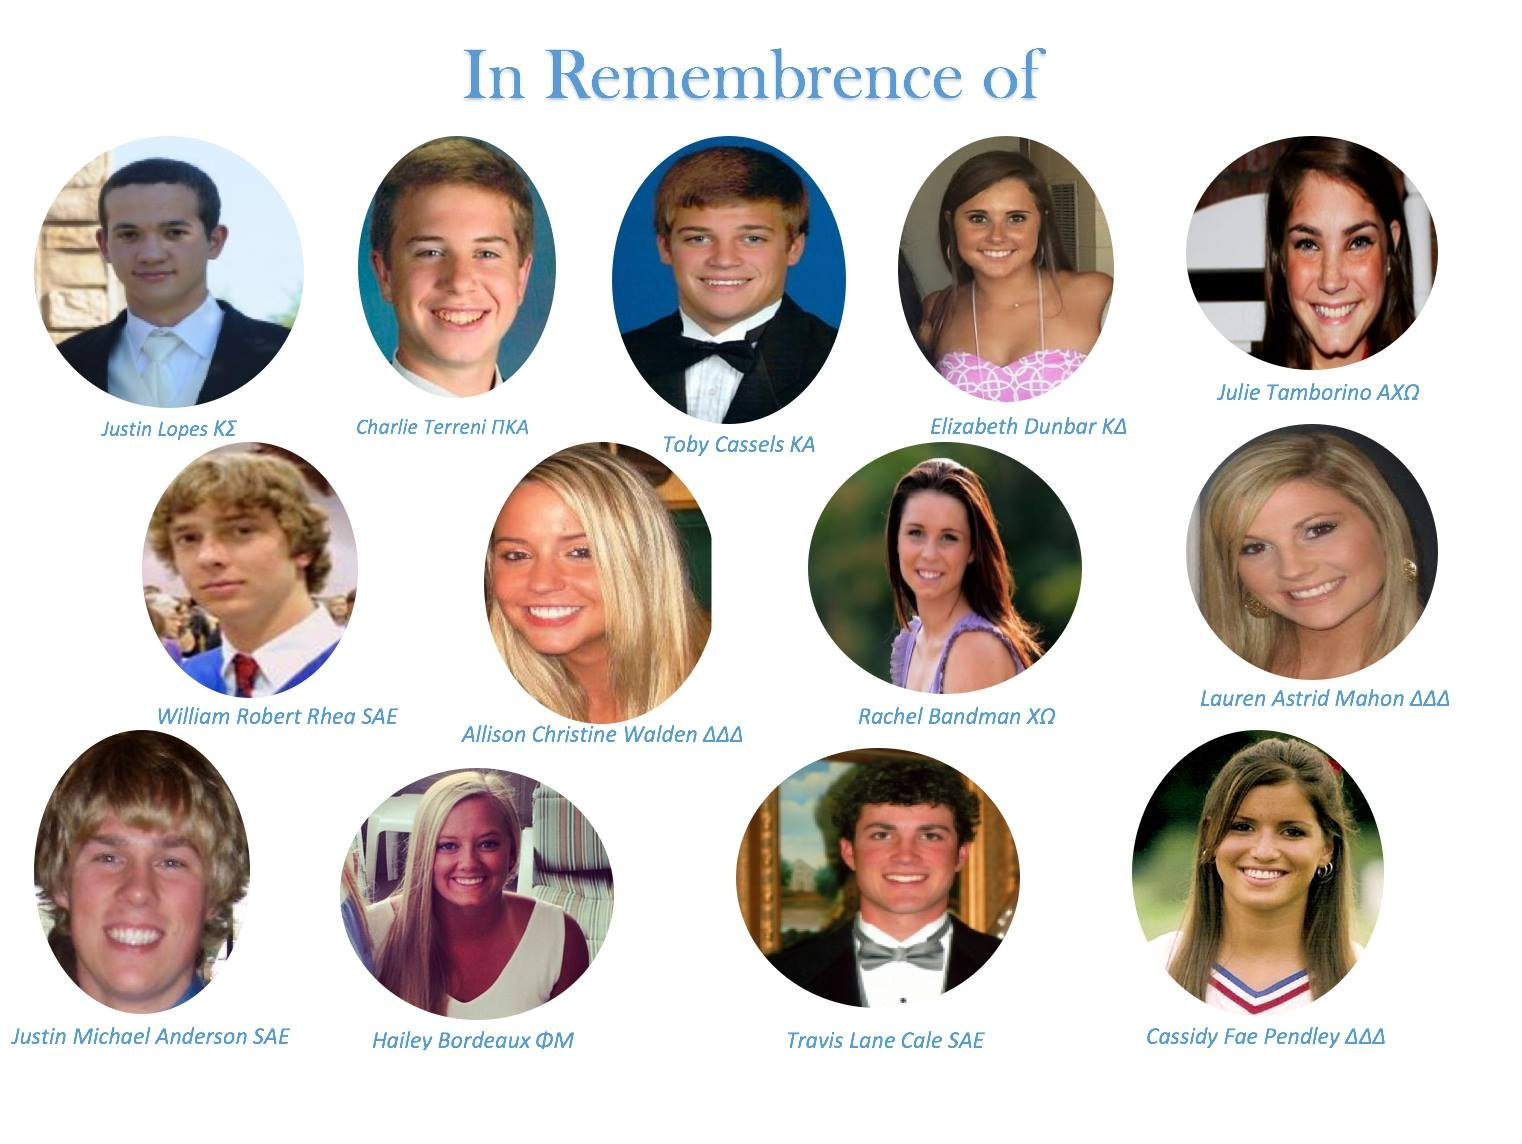 The thirteen people who will be remembered